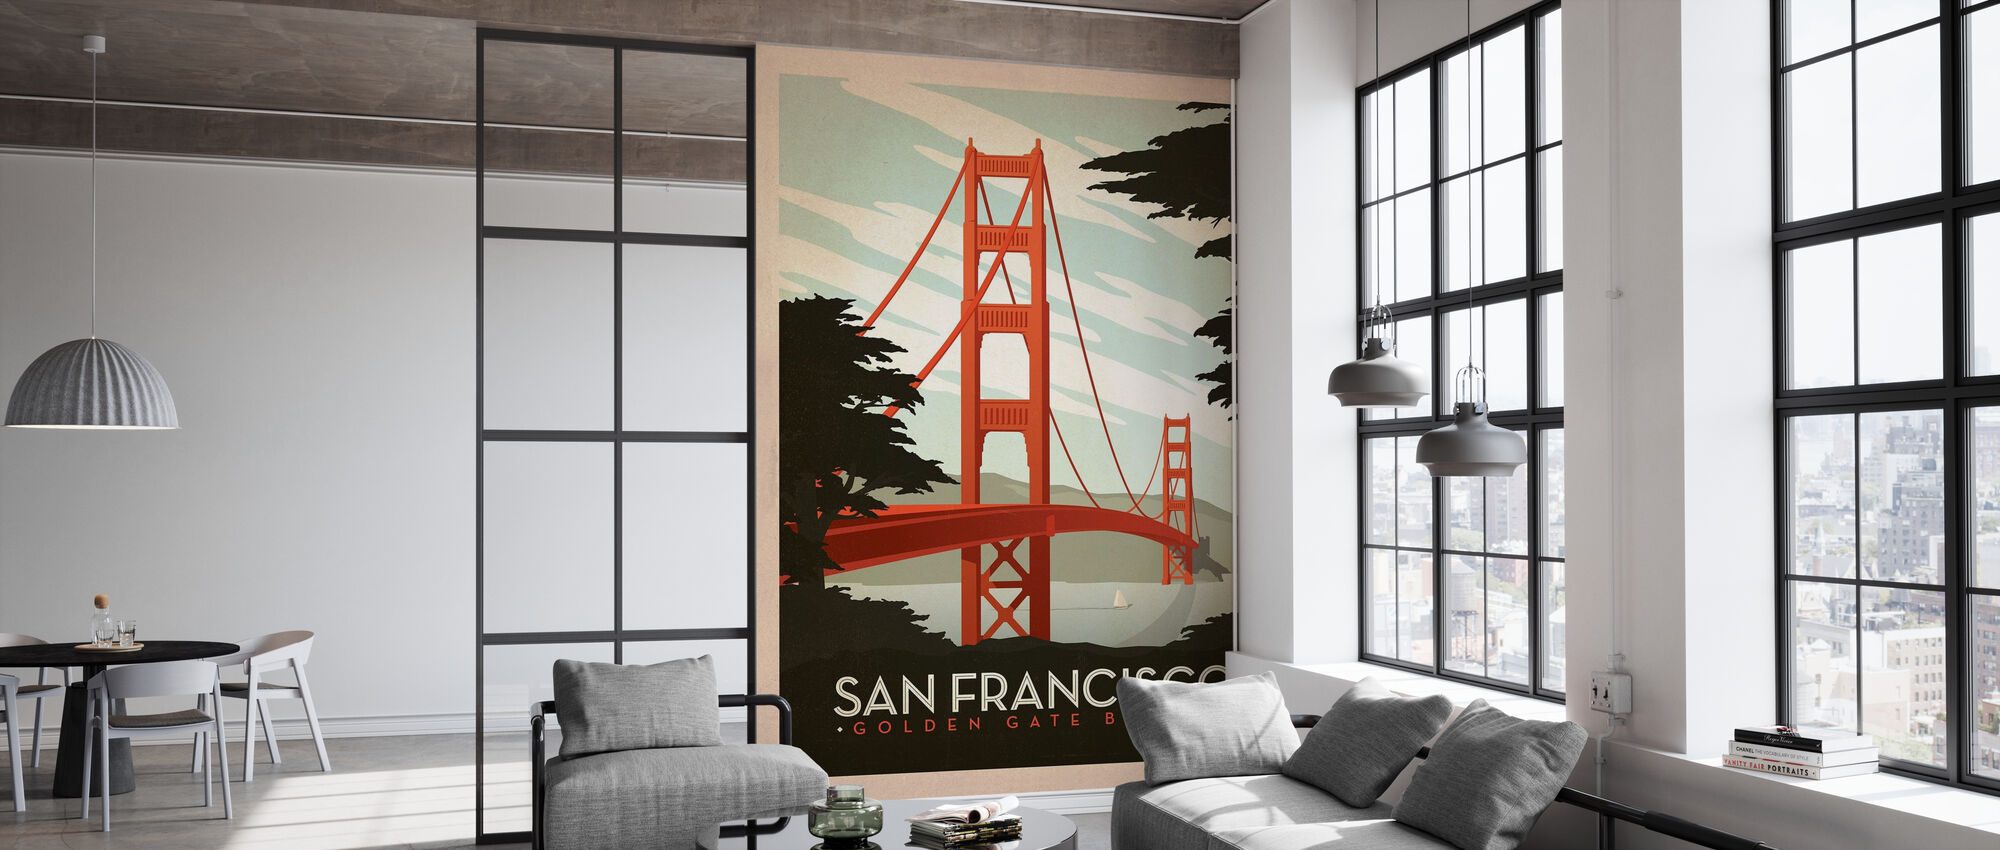 San Francisco - Wallpaper - Office